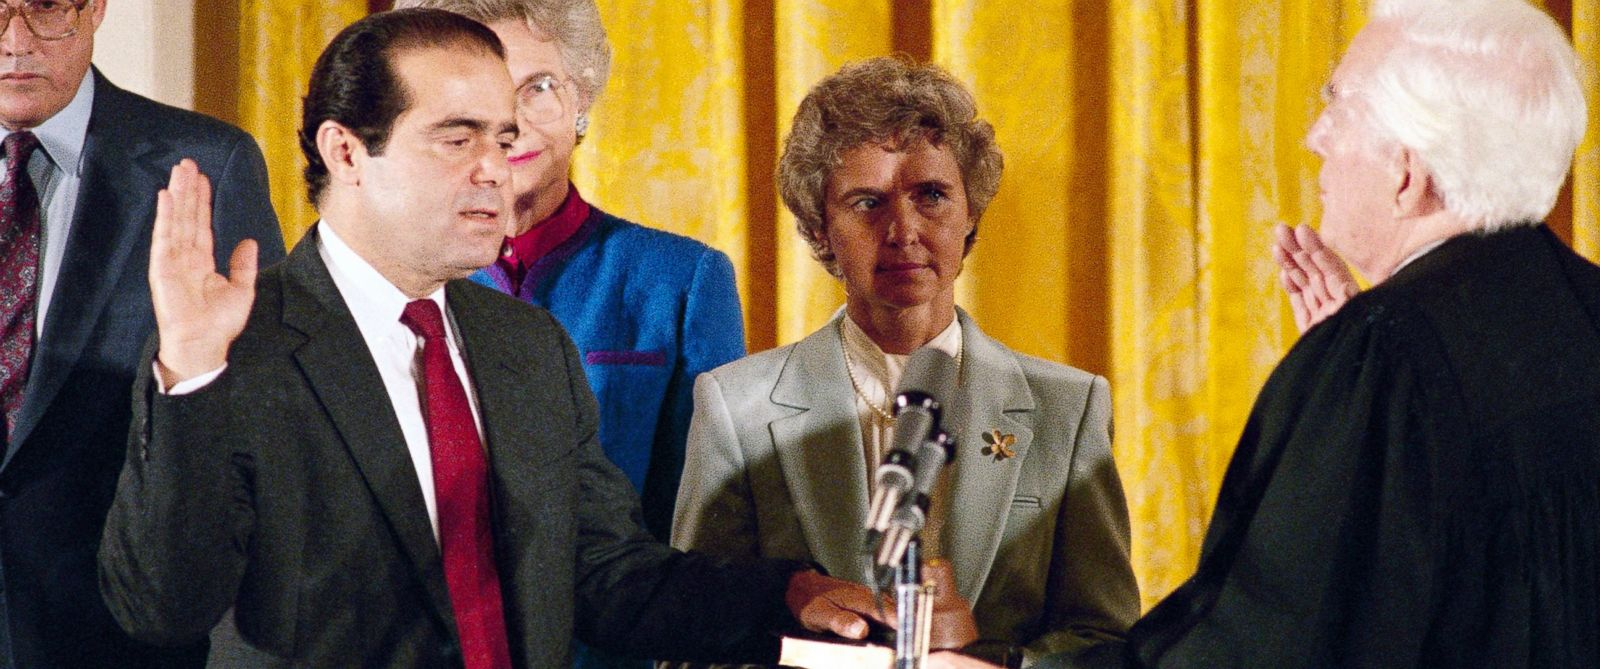 PHOTO: In this Sept. 26, 1986 file photo, retiring Chief Justice Warren Burger, right, administers an oath to Associate Justice Antonin Scalia, as Scalias wife, Maureen, holds the bible during ceremonies in the East Room of White House, Washington.